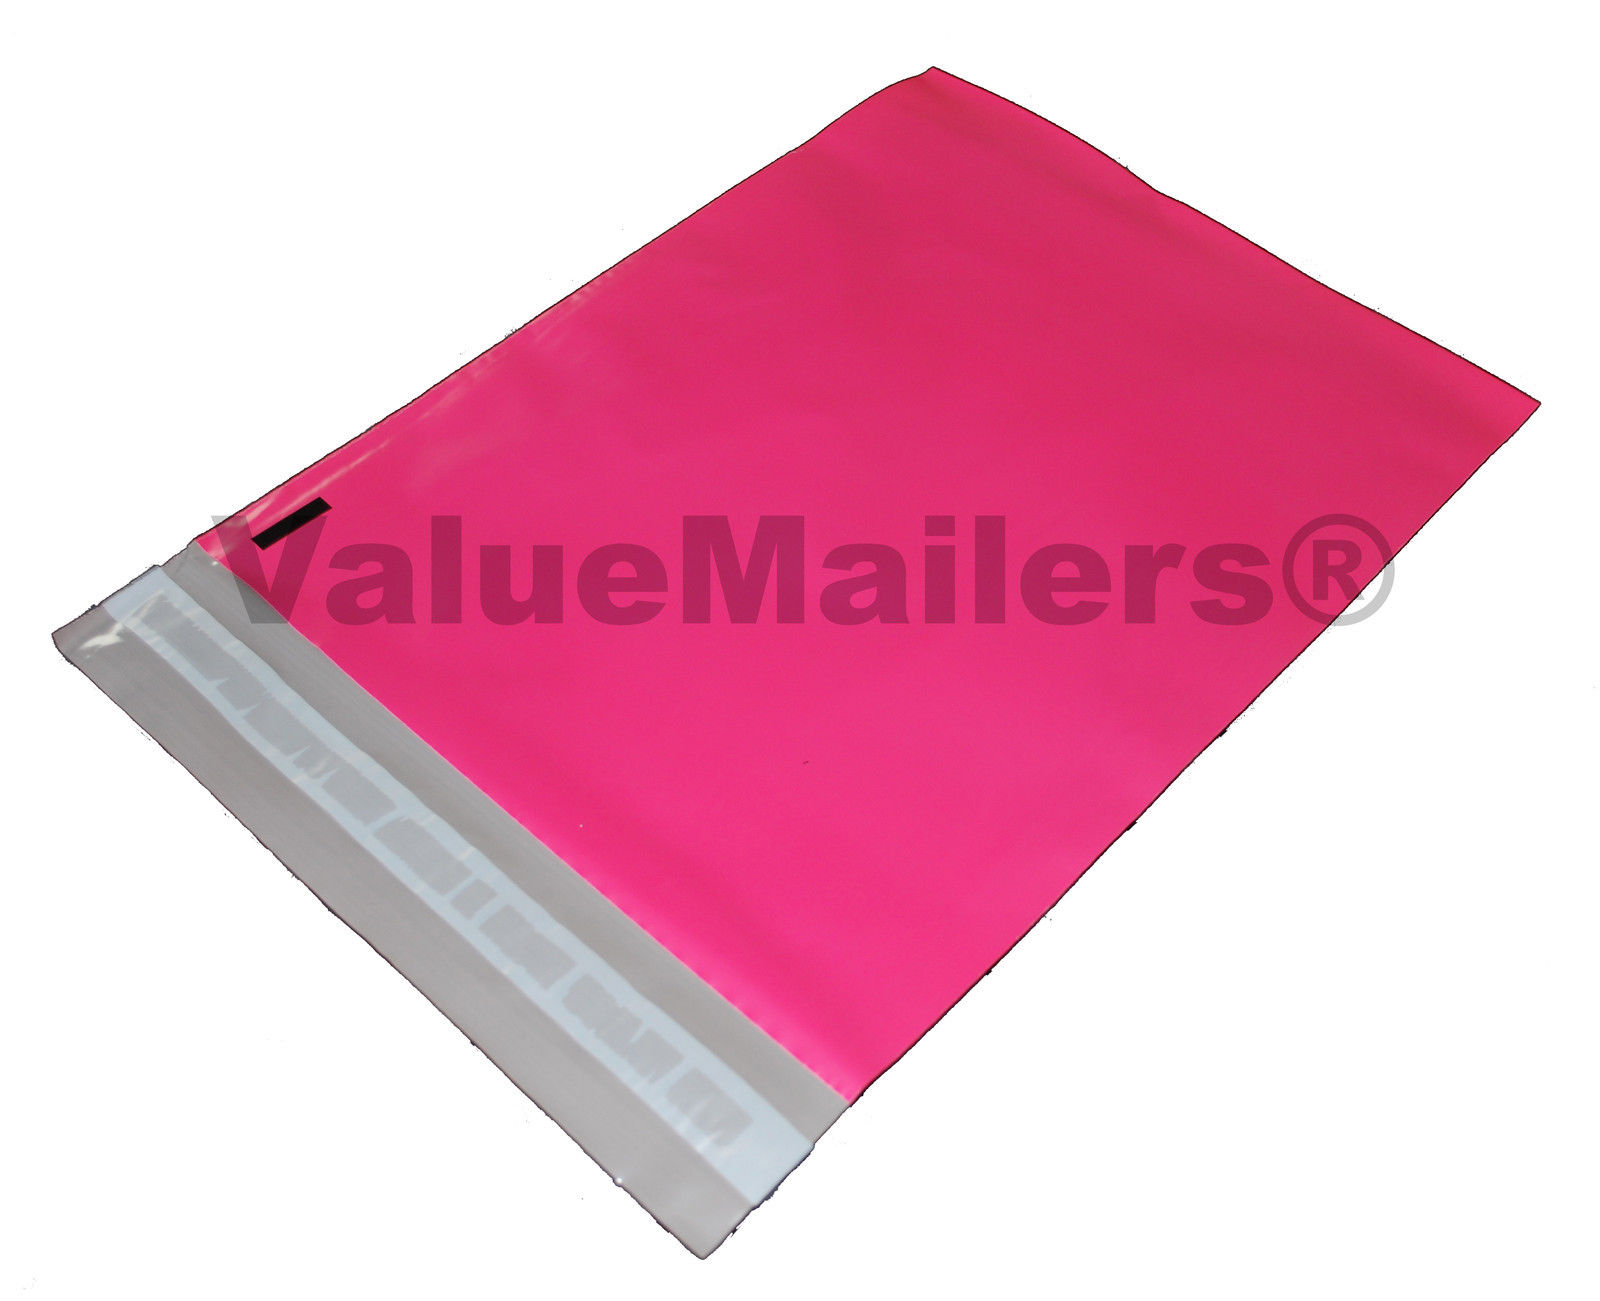 "200 10x13 Pink ValueMailers Poly Mailers Shipping Envelopes Bags 10"" x 13"" by ValueMailers"